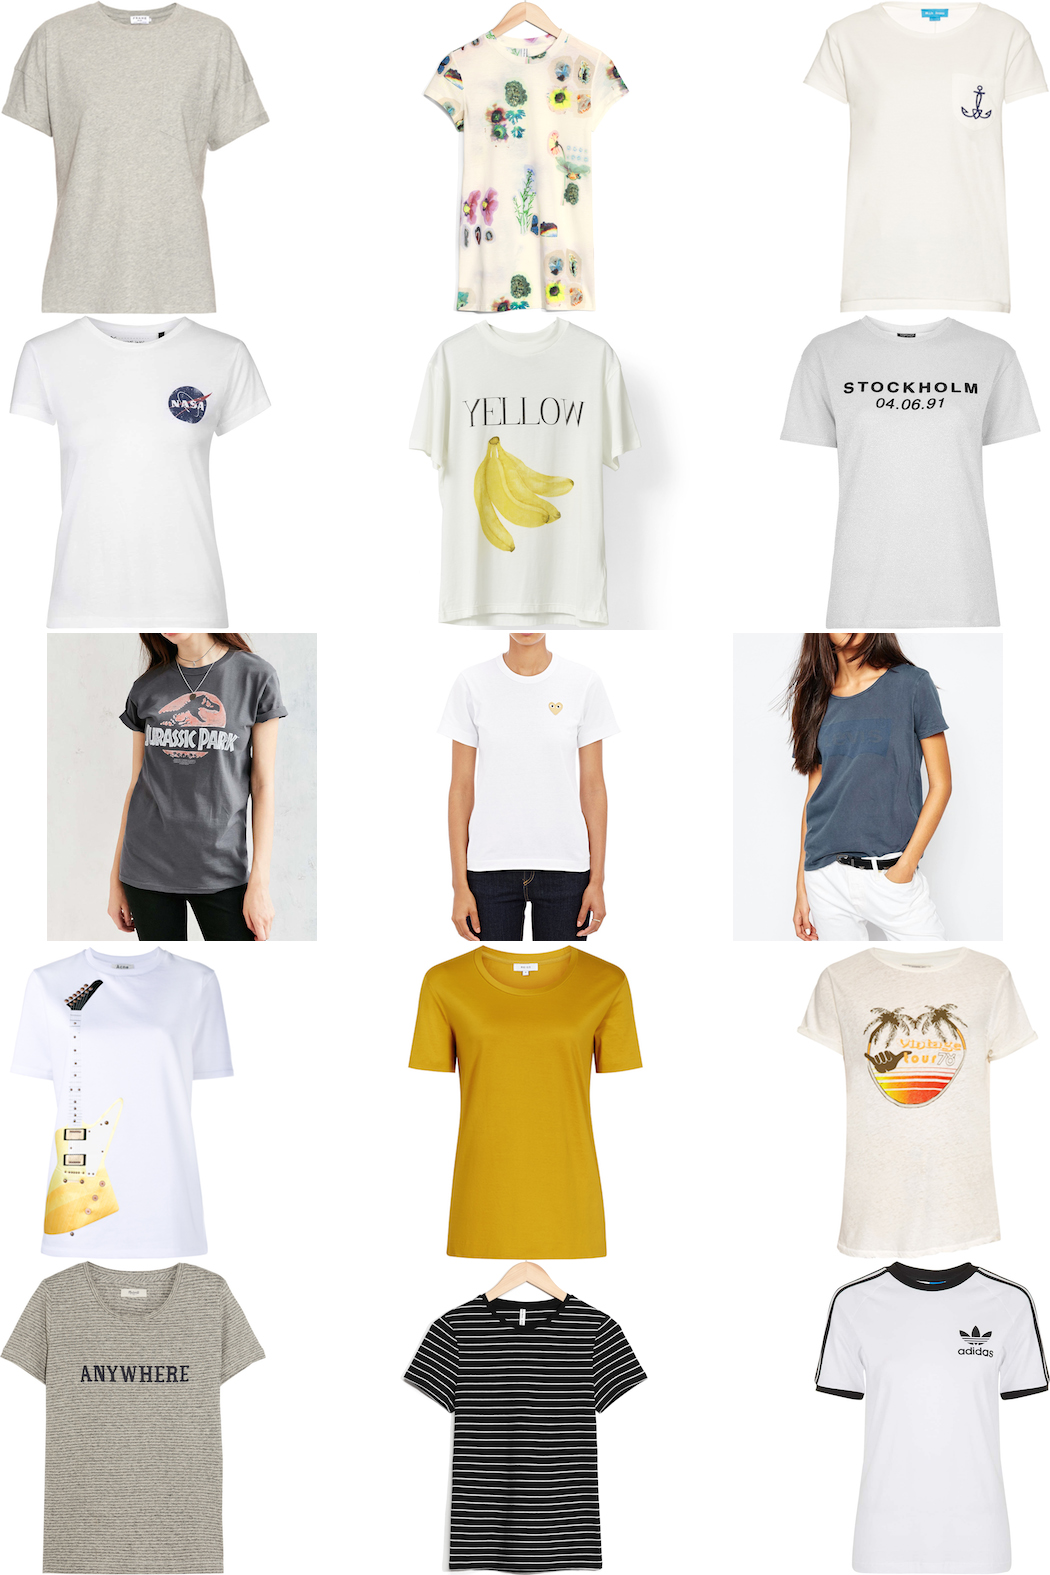 15 t-shirts fash-n-chips.com